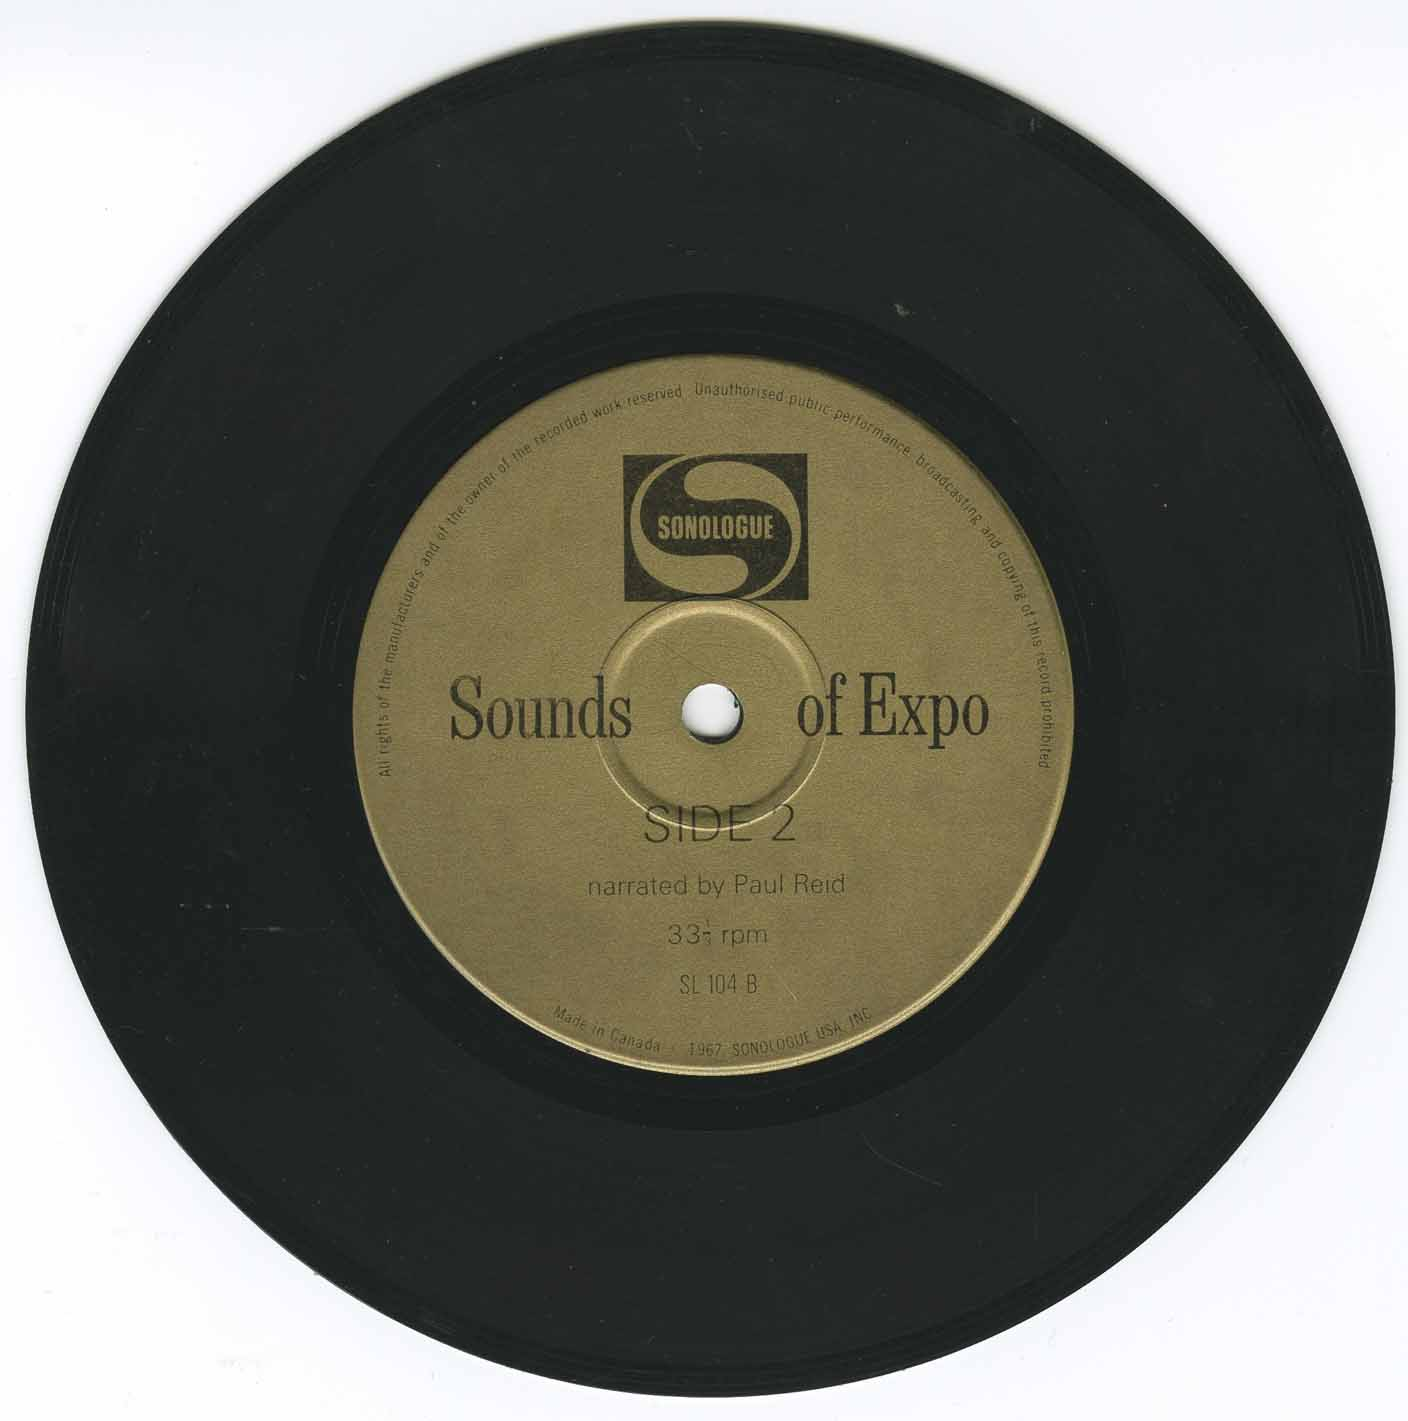 Paul Reid Sounds Of Expo 67